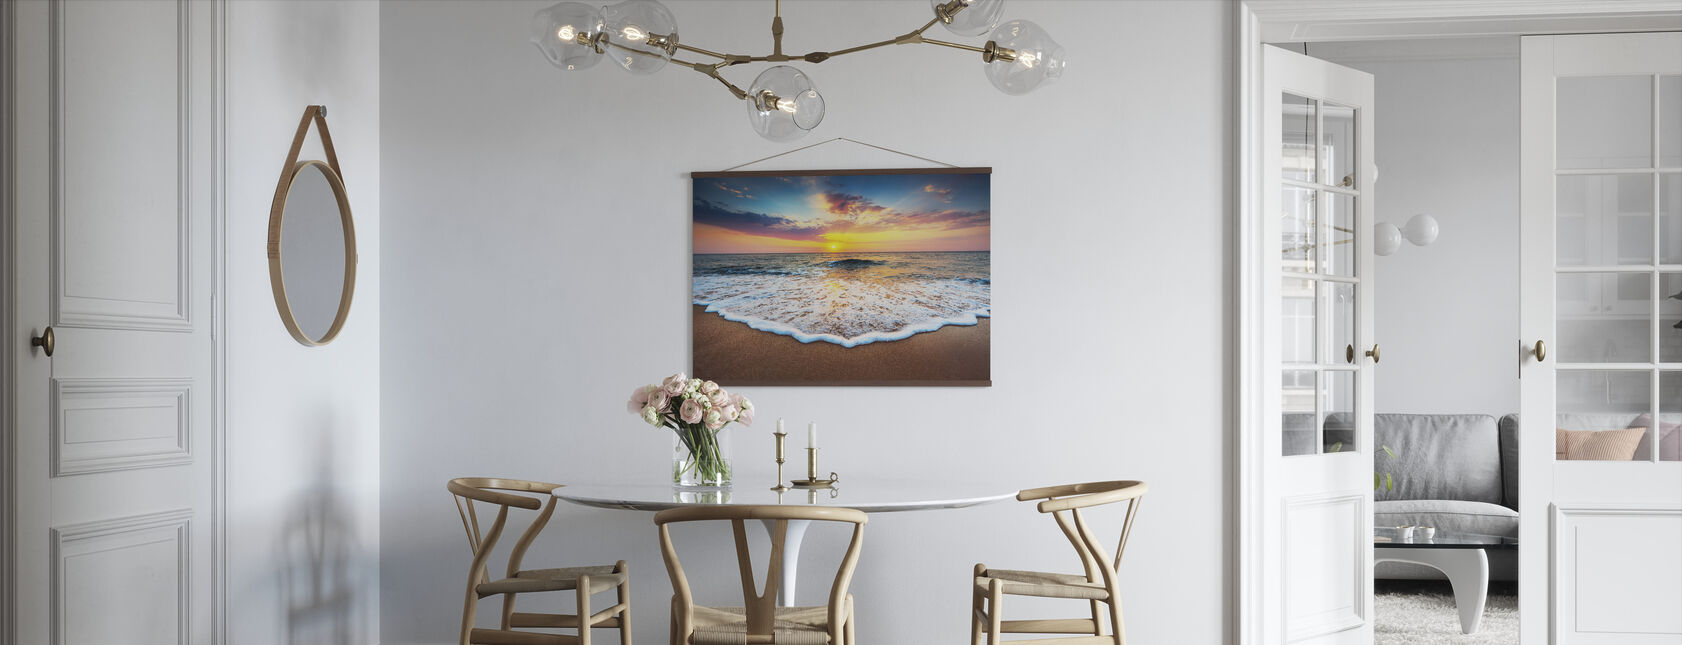 Sunrise and Dreams - Poster - Kitchen